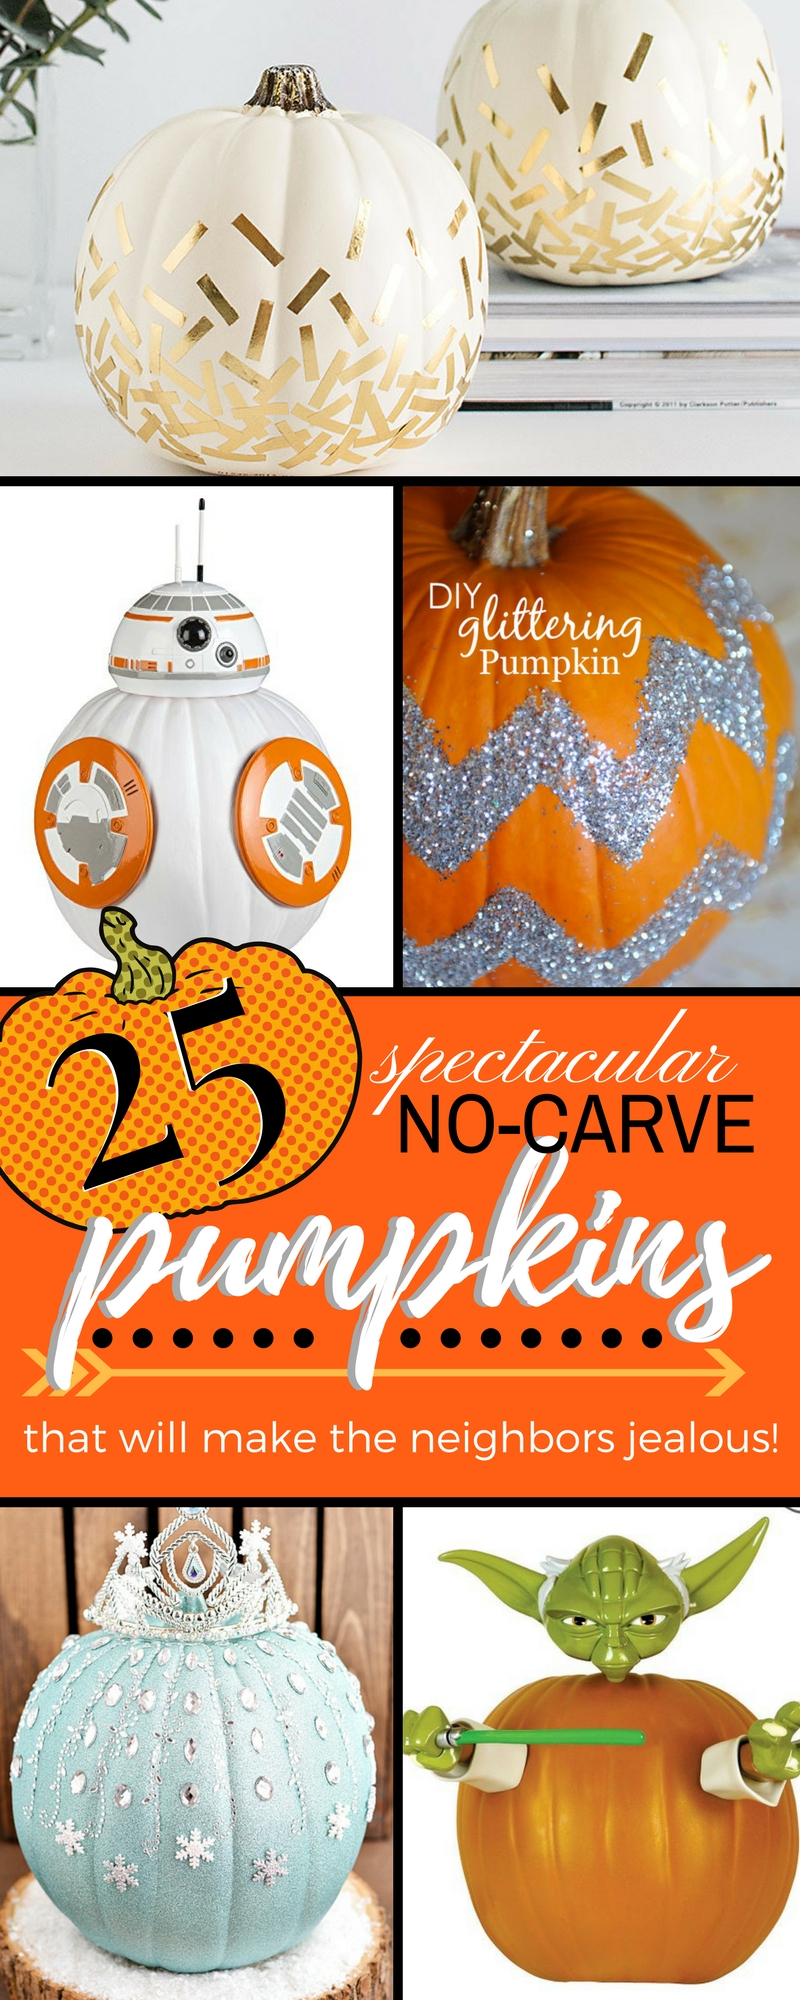 Carving pumpkins for Halloween is an age old tradition...but who is actually good at it?  I'm horrible at carving pumpkins so here's 25 fabulous ideas for no-carve pumpkins that are EASY, SPOOKY, and FUN!